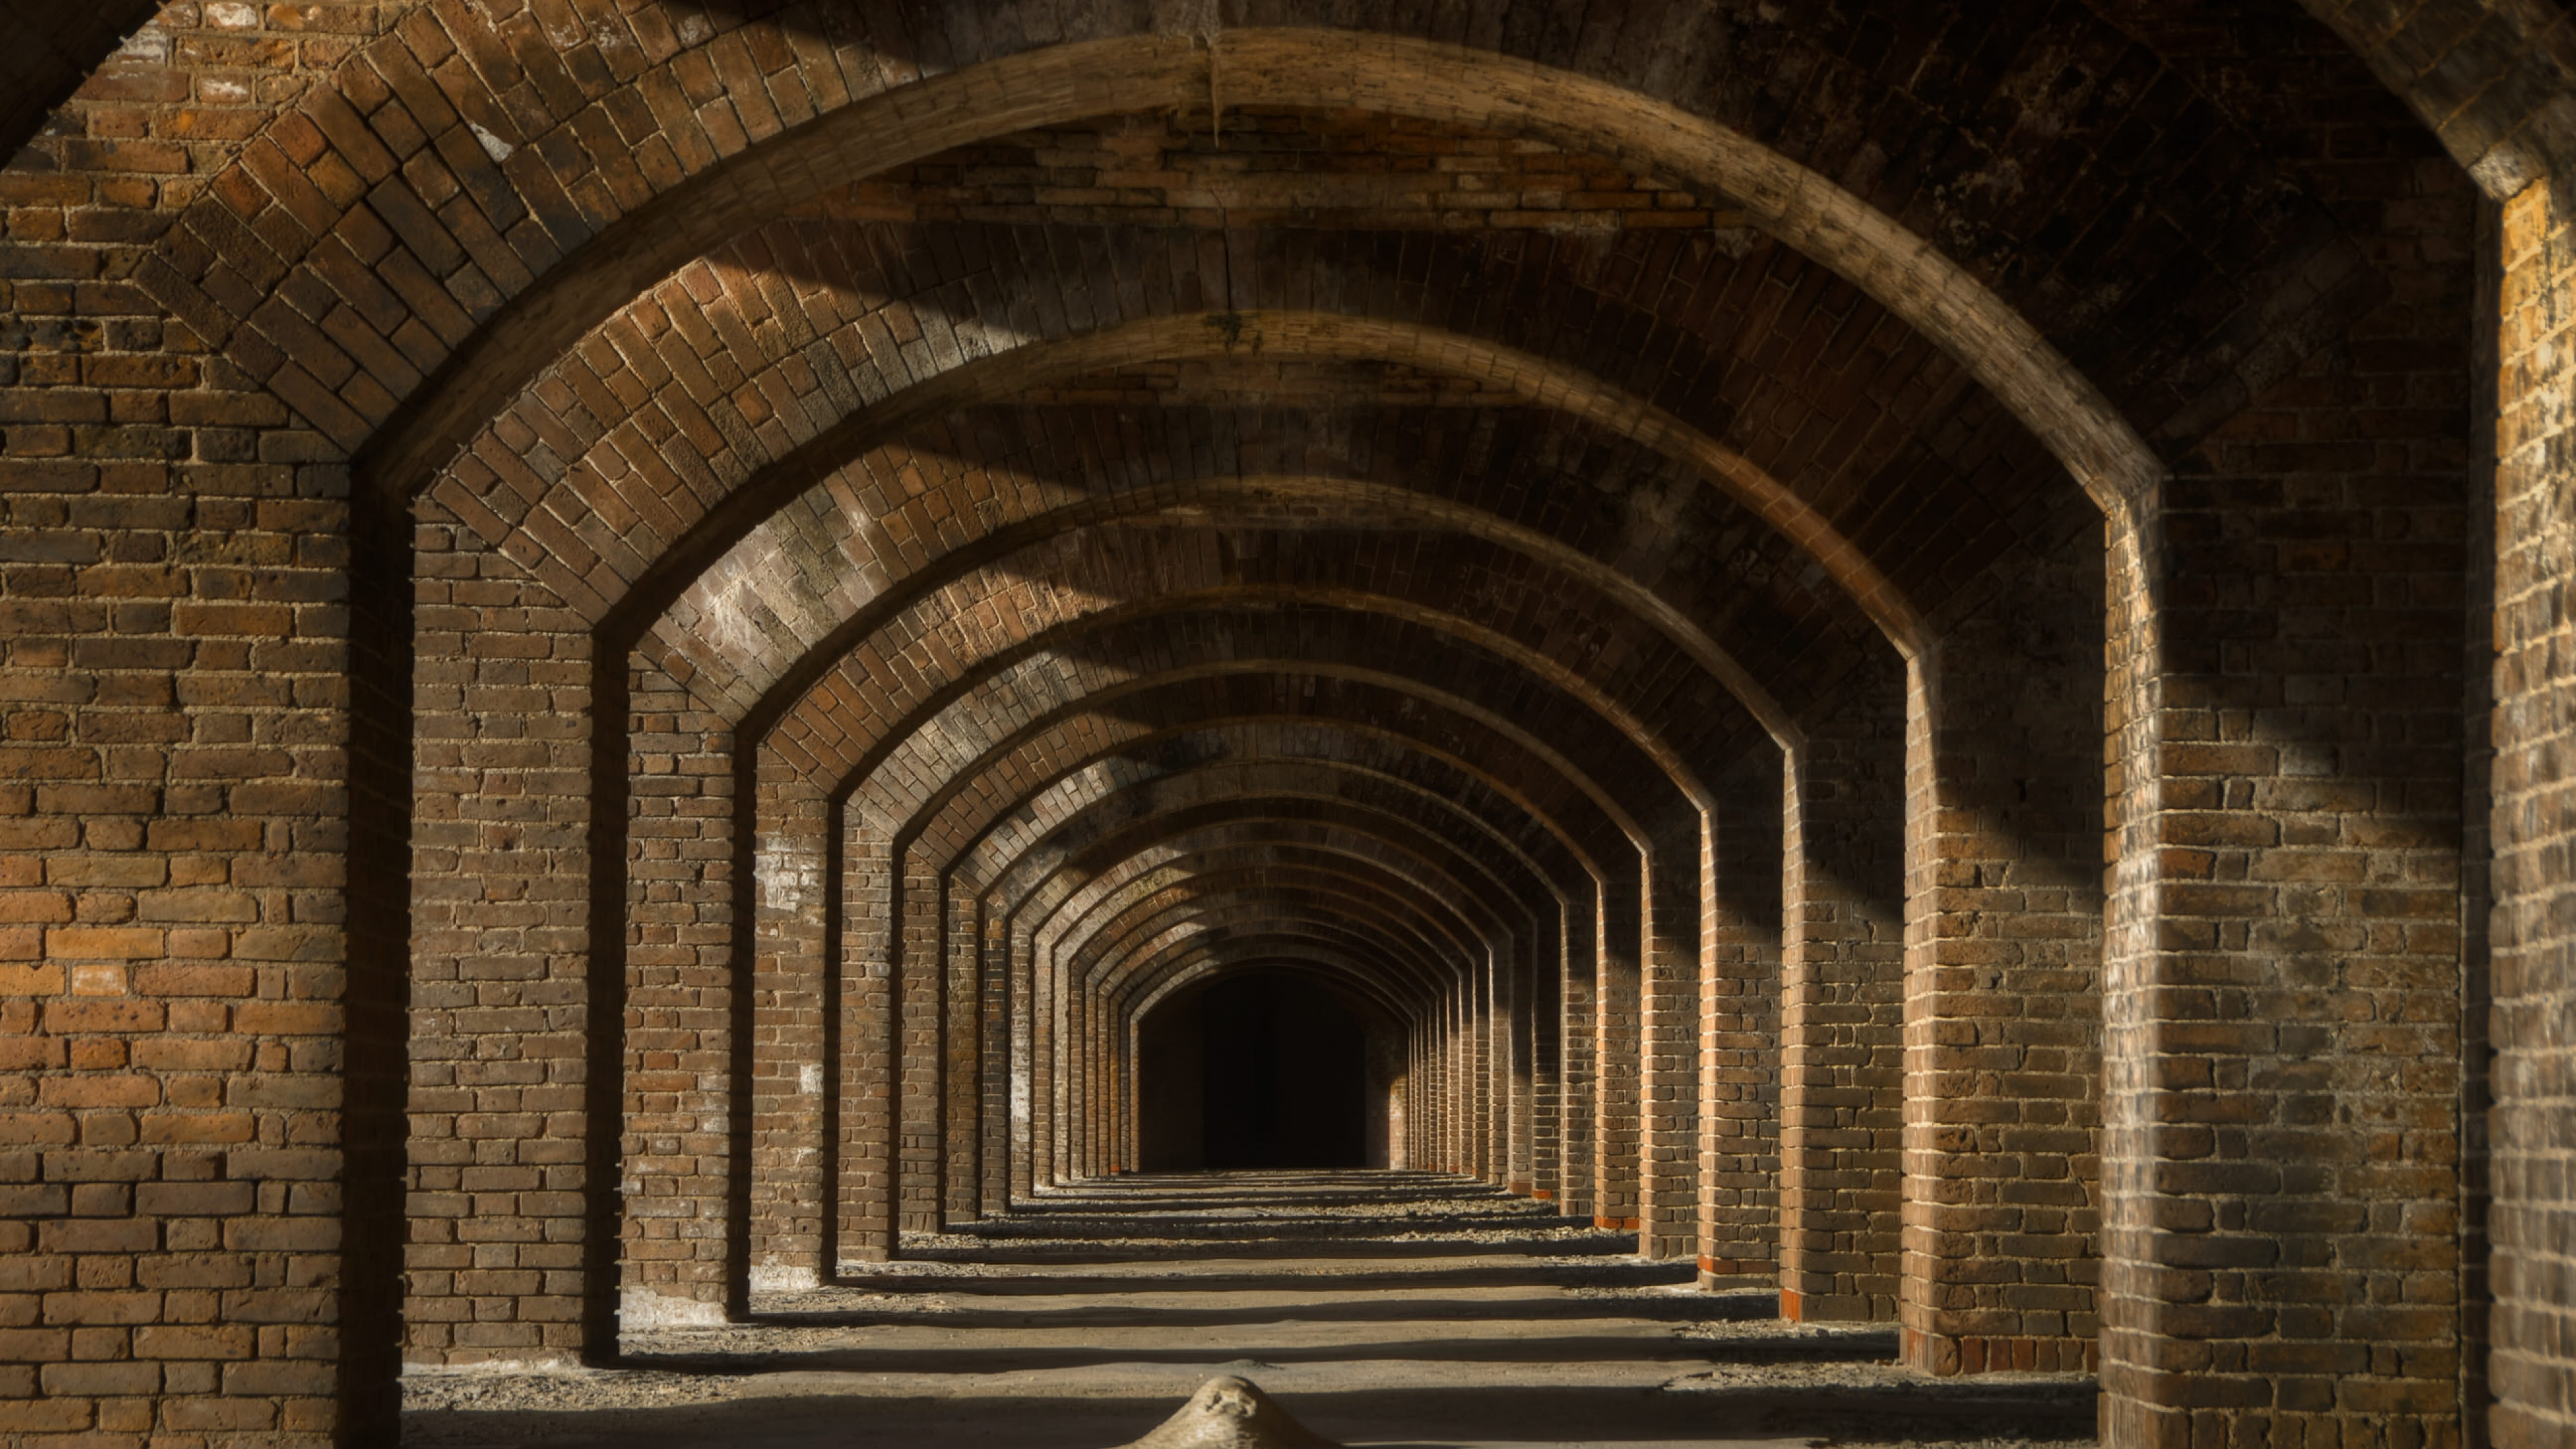 Brick archway at Dry Tortugas National Park